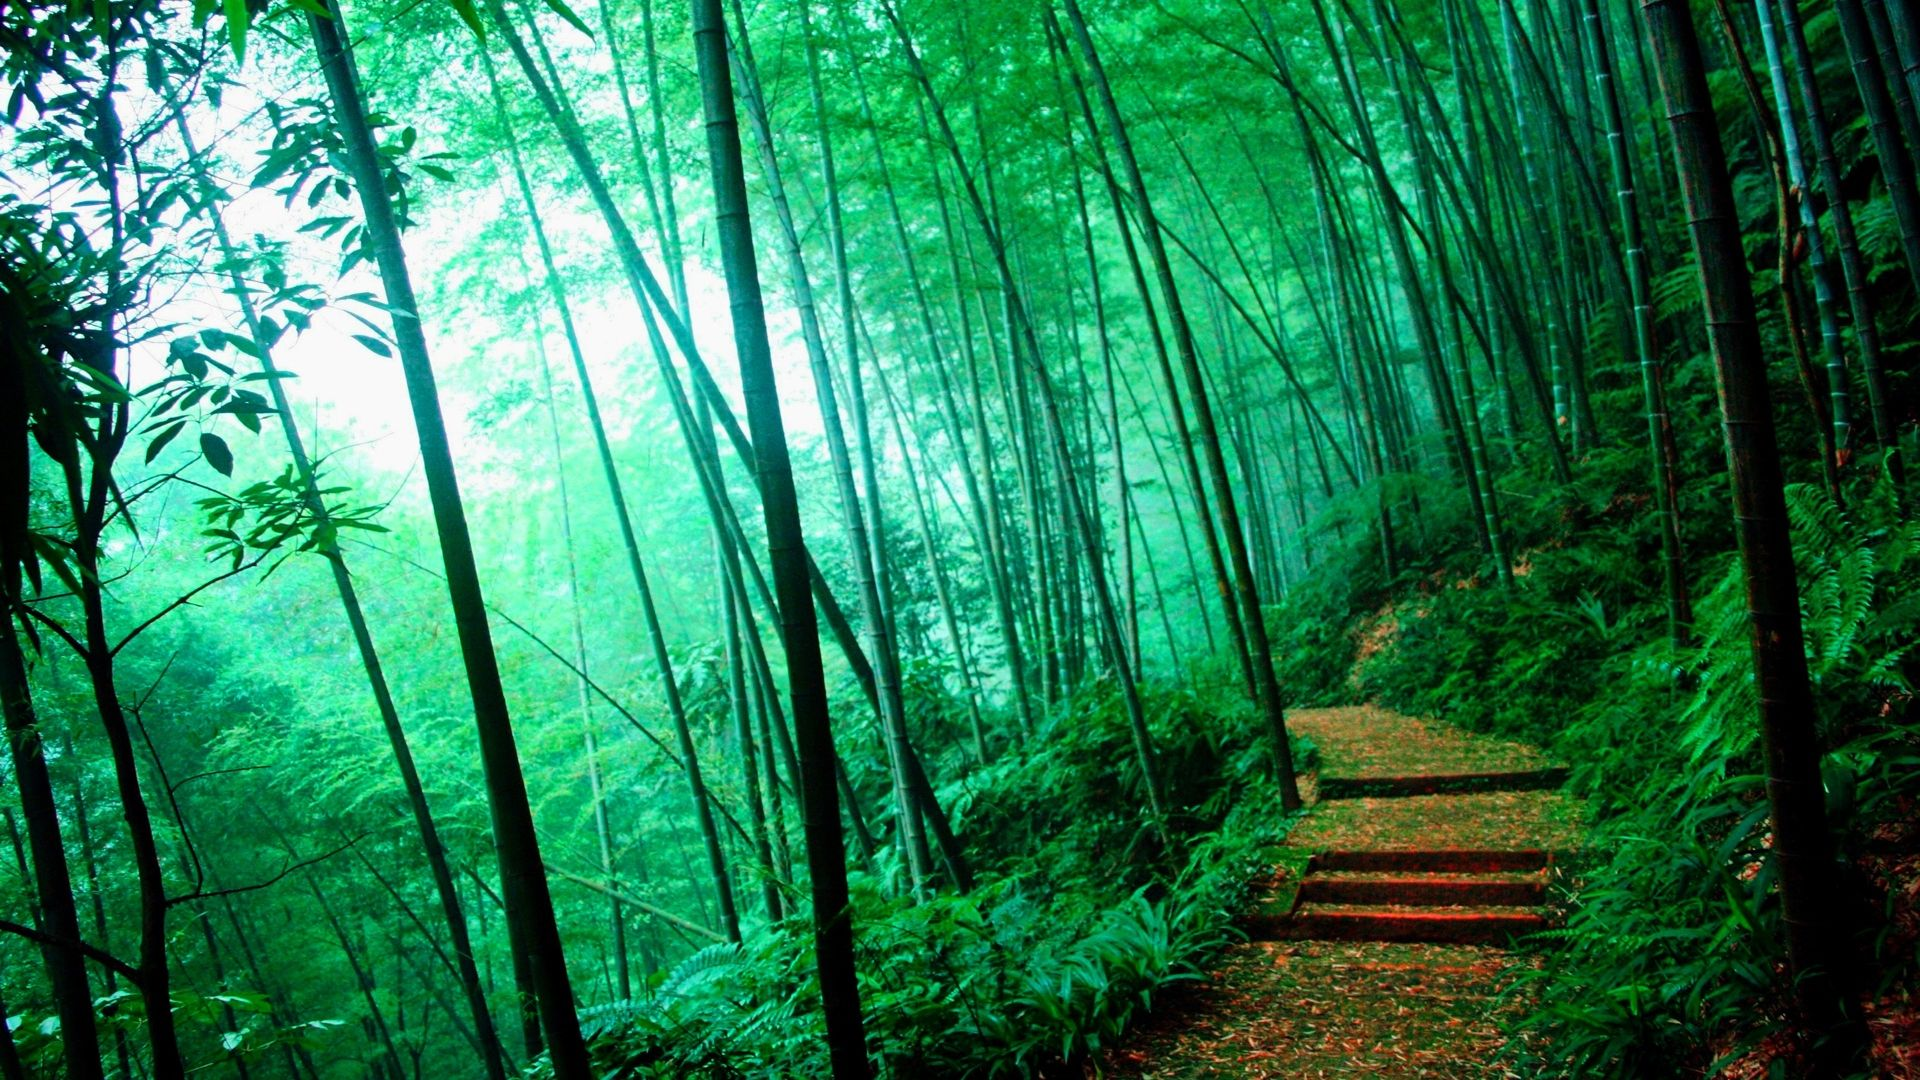 Bamboo Forest Google Search Forest Wallpaper Bamboo Forest